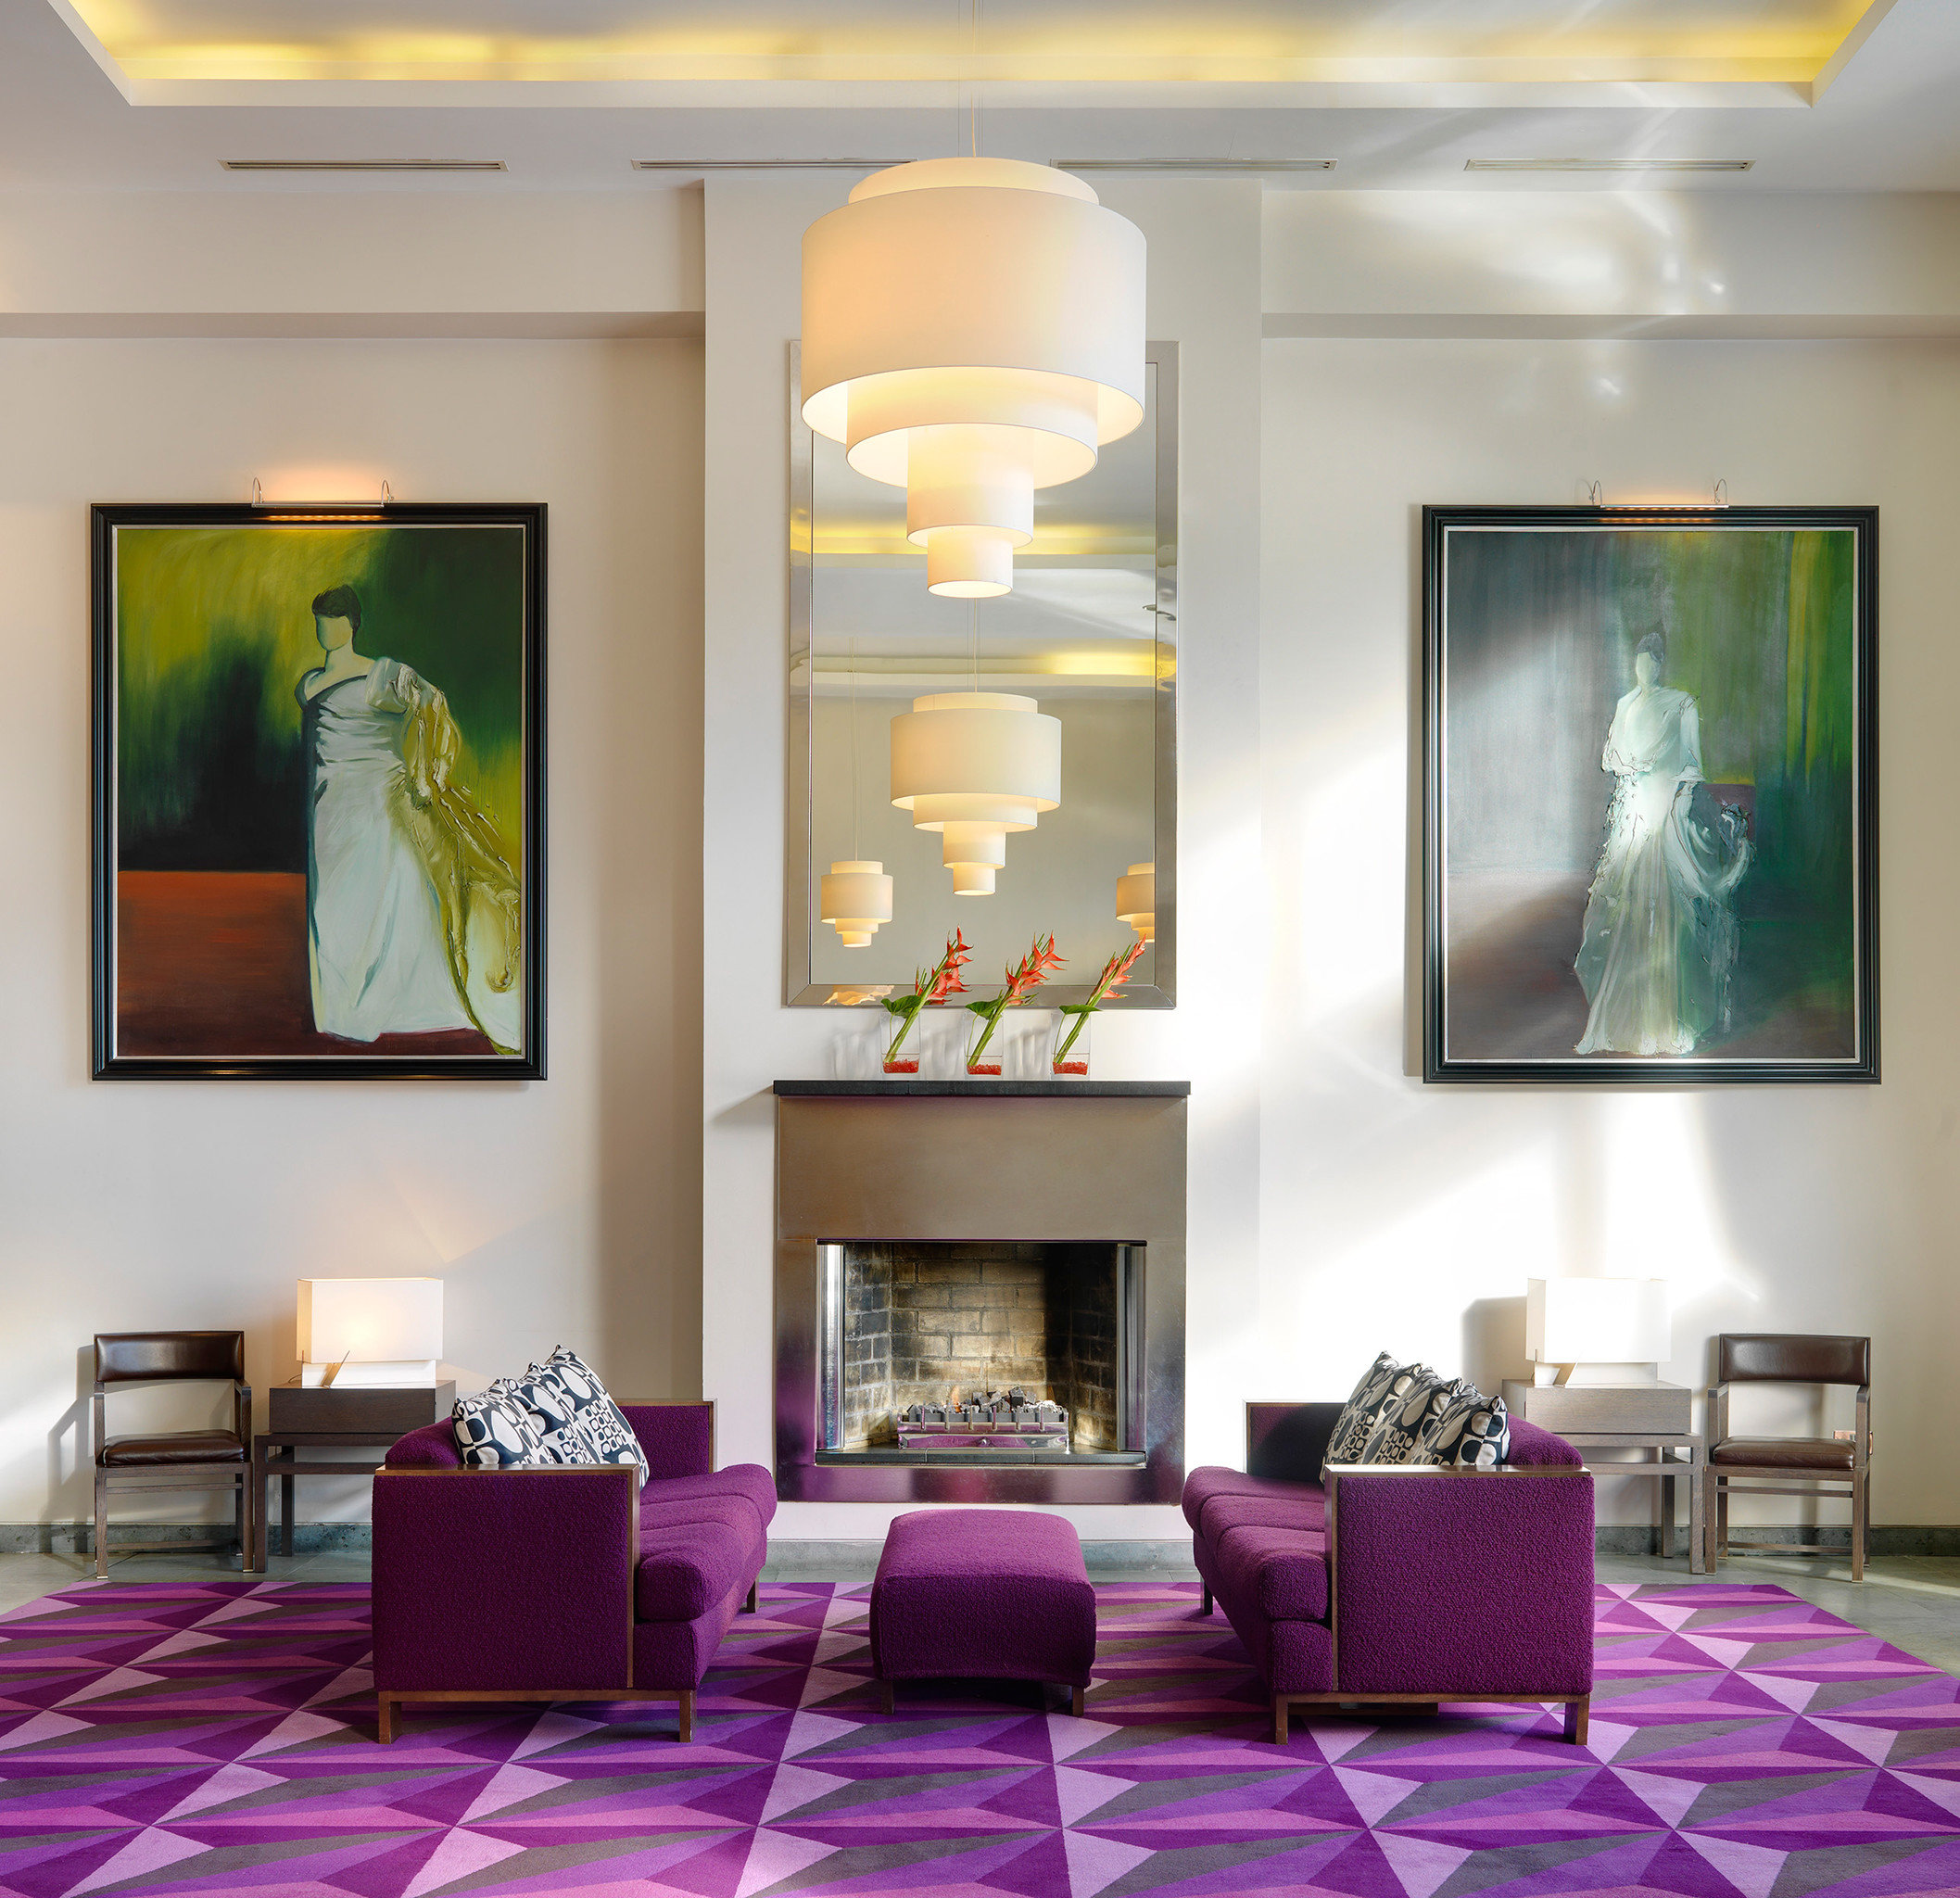 Hip Lounge purple living room modern art home pink Lobby painted colored